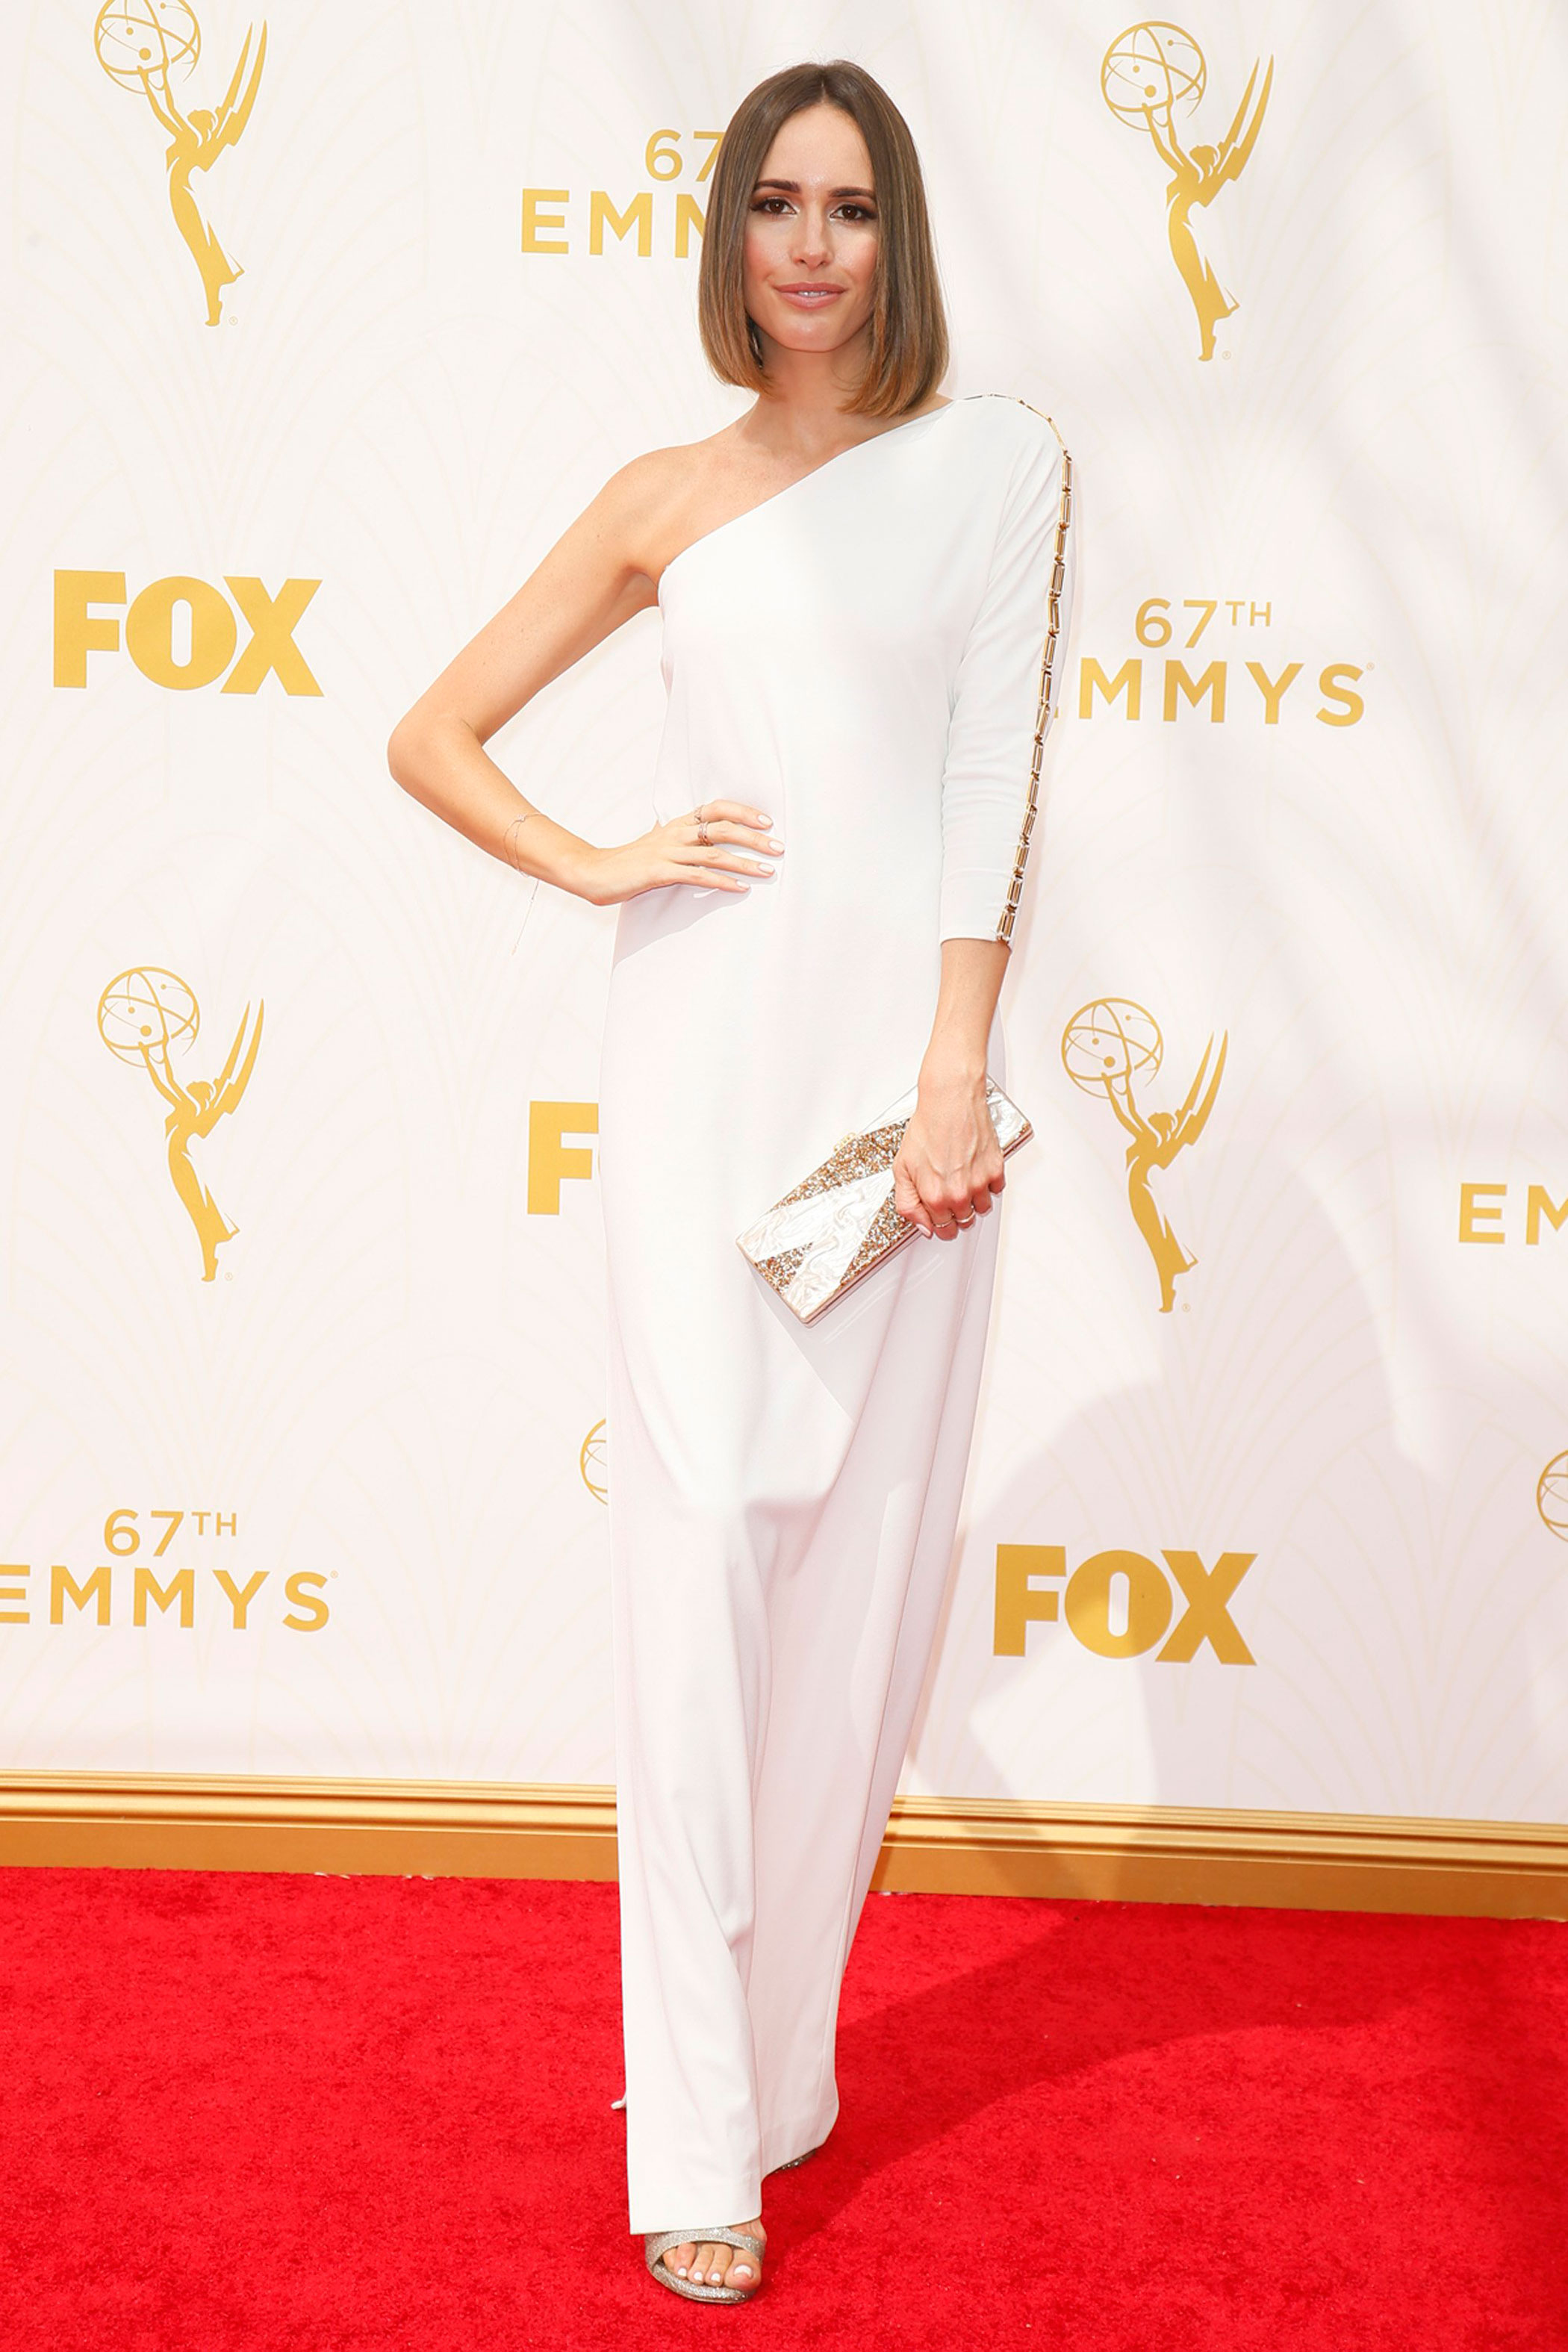 Louise Roe arrives at the 67th Primetime Emmy Awards on Sept. 20, 2015, at the Microsoft Theater in Los Angeles.